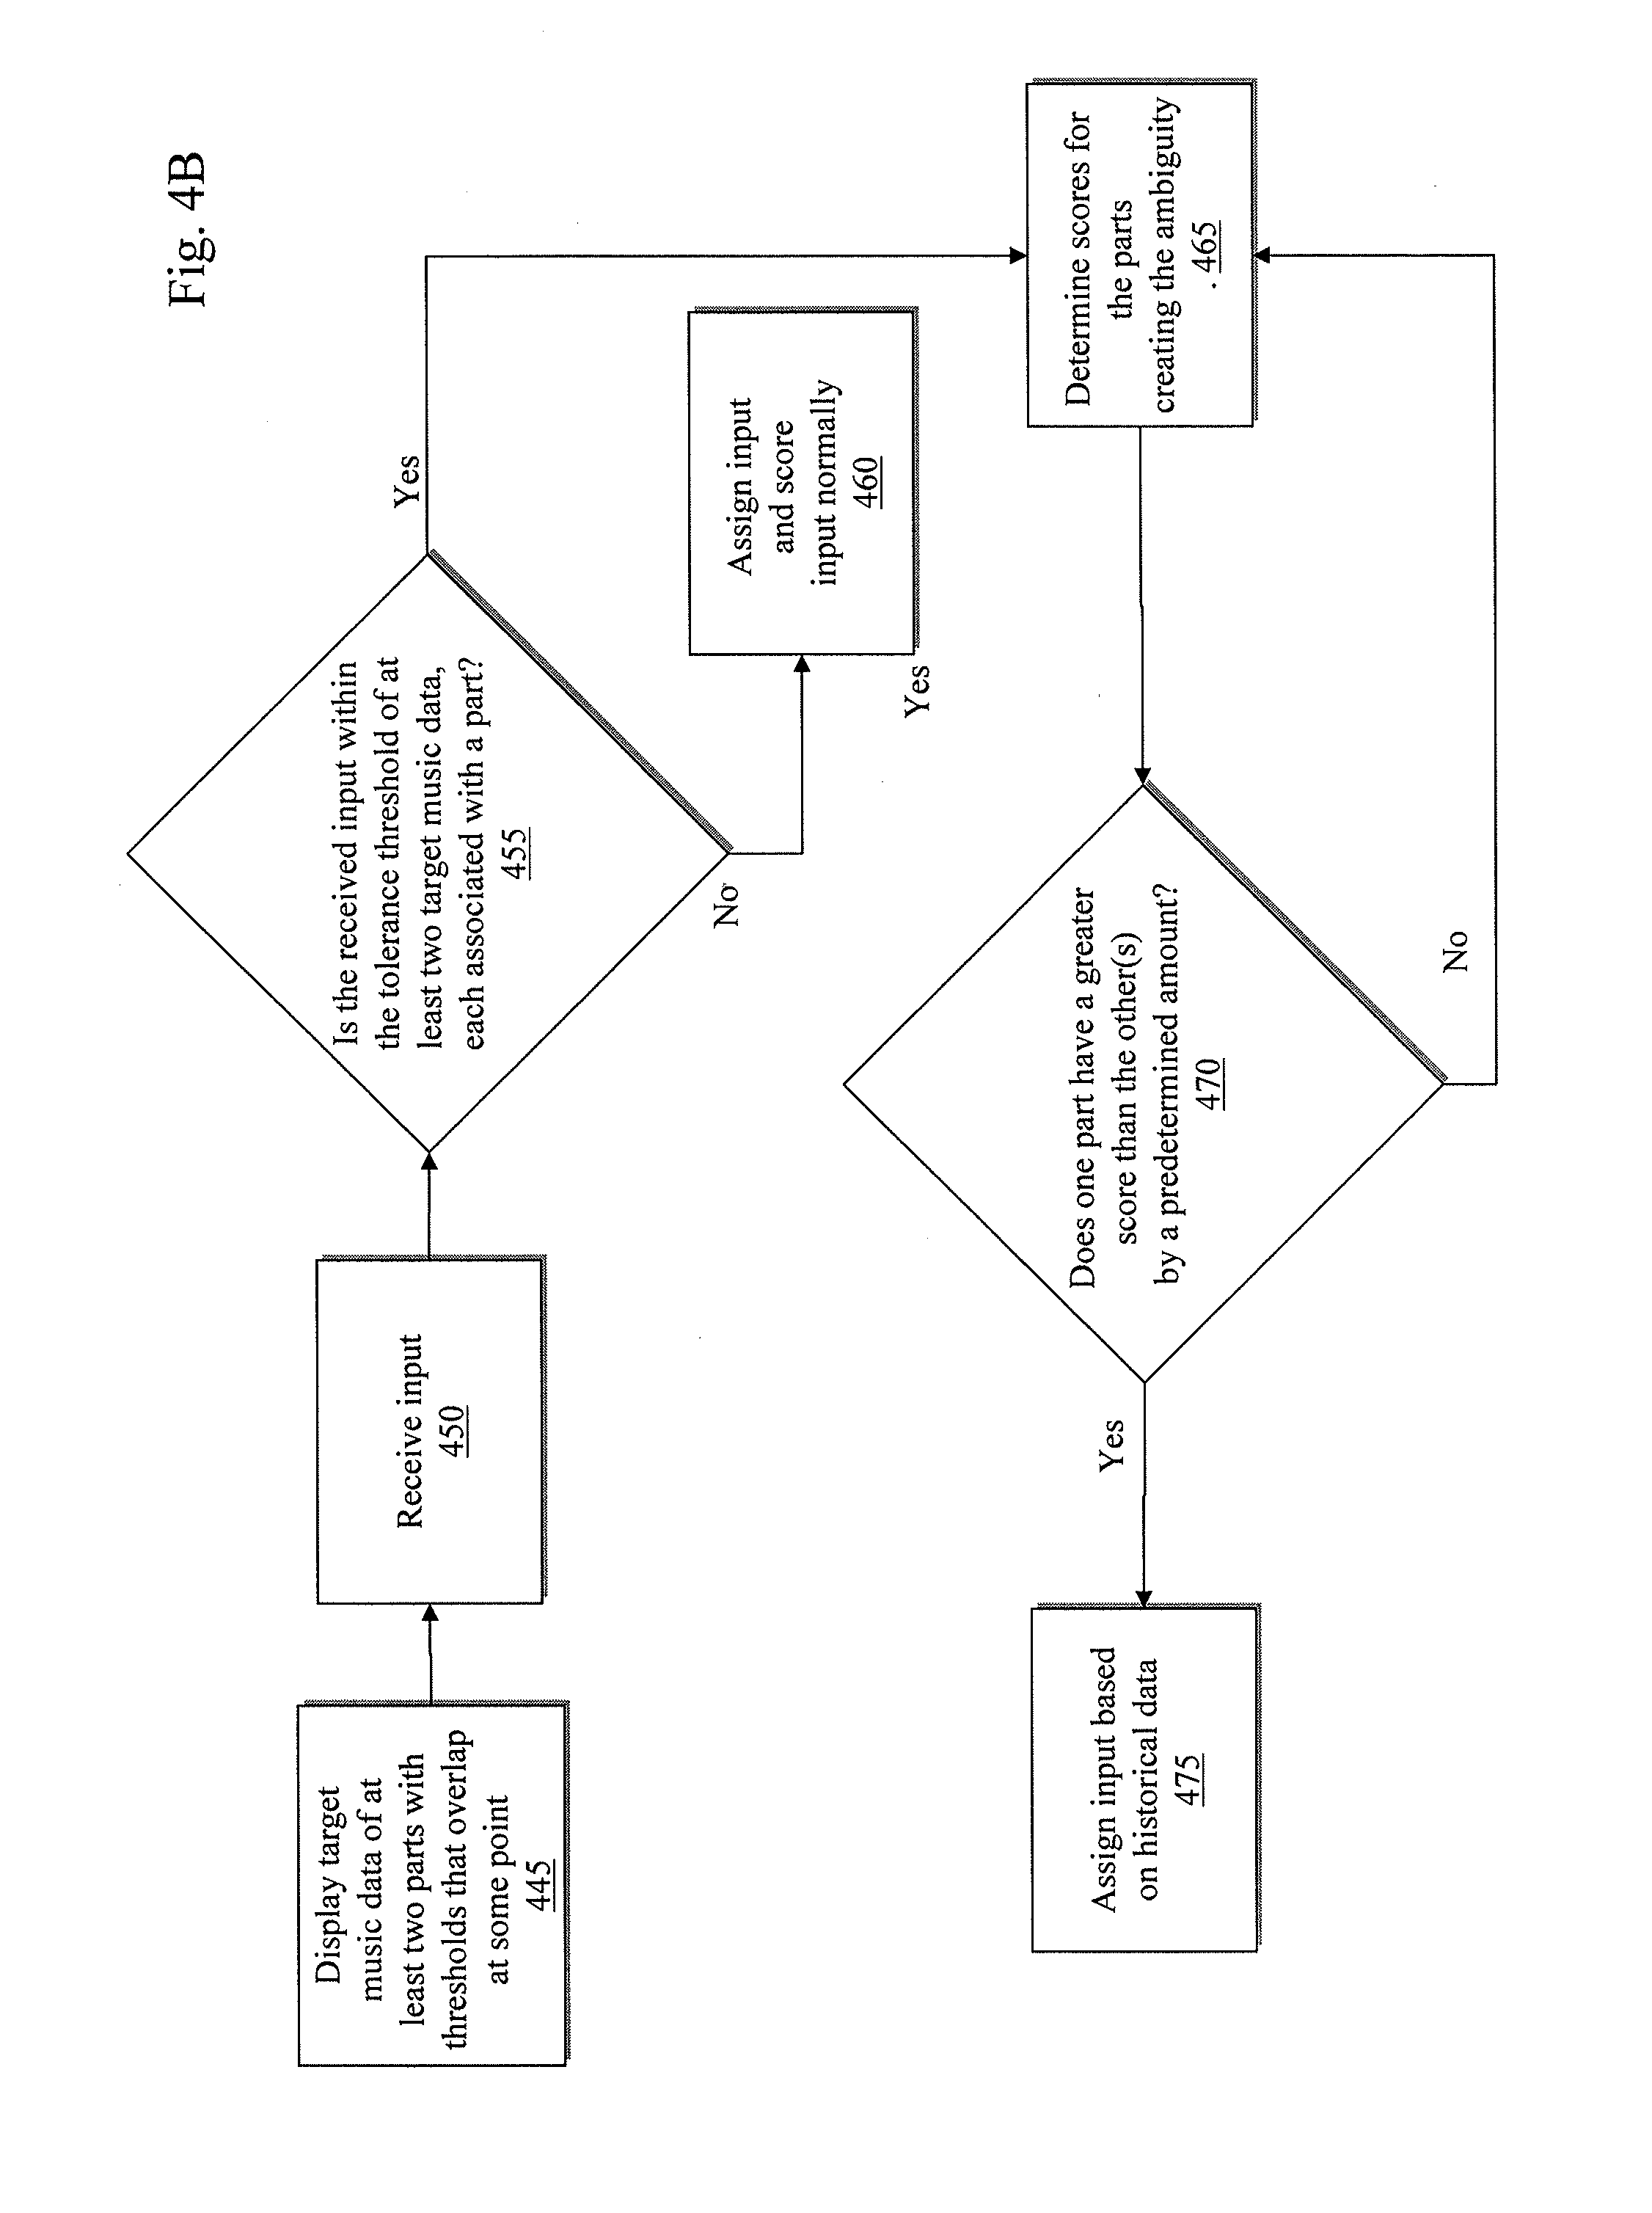 Patent Us 8465366 B2 As Samsung Tv Parts Diagram Together With 7 Segment Display 0 Petitions